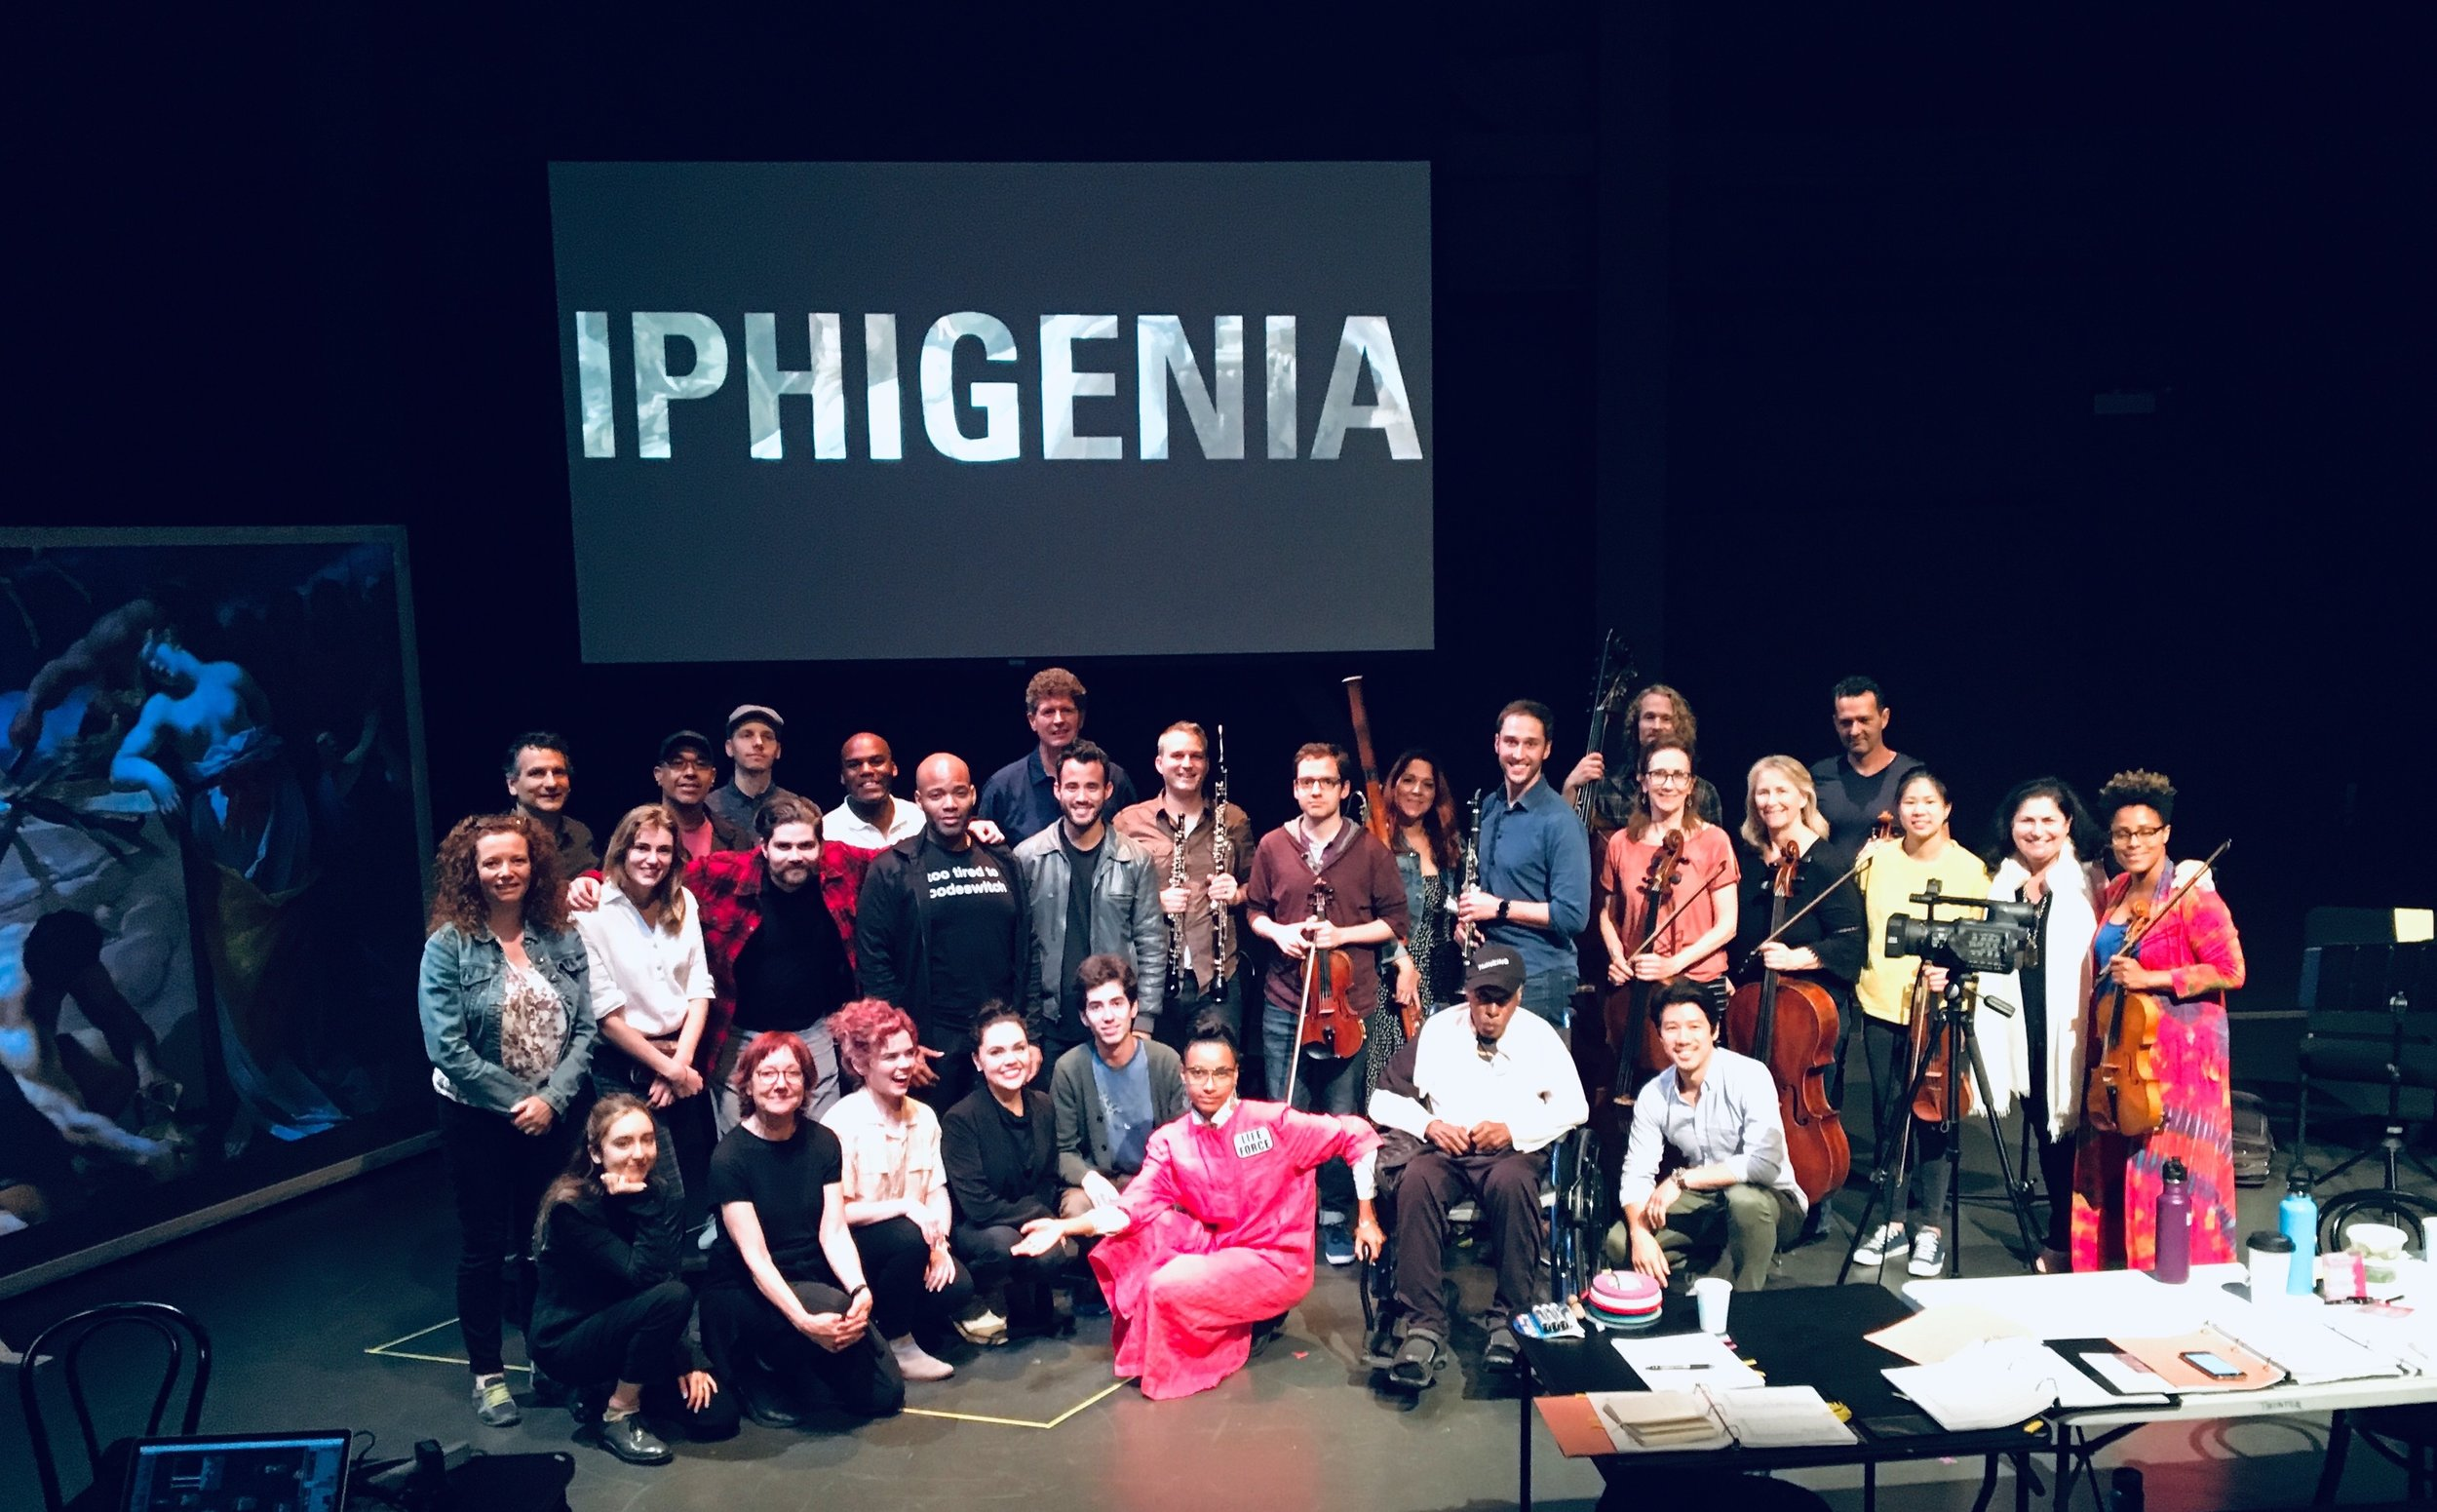 Iphigenia  workshop, The Rosenthal Theater @ Inner City Arts, Los Angeles